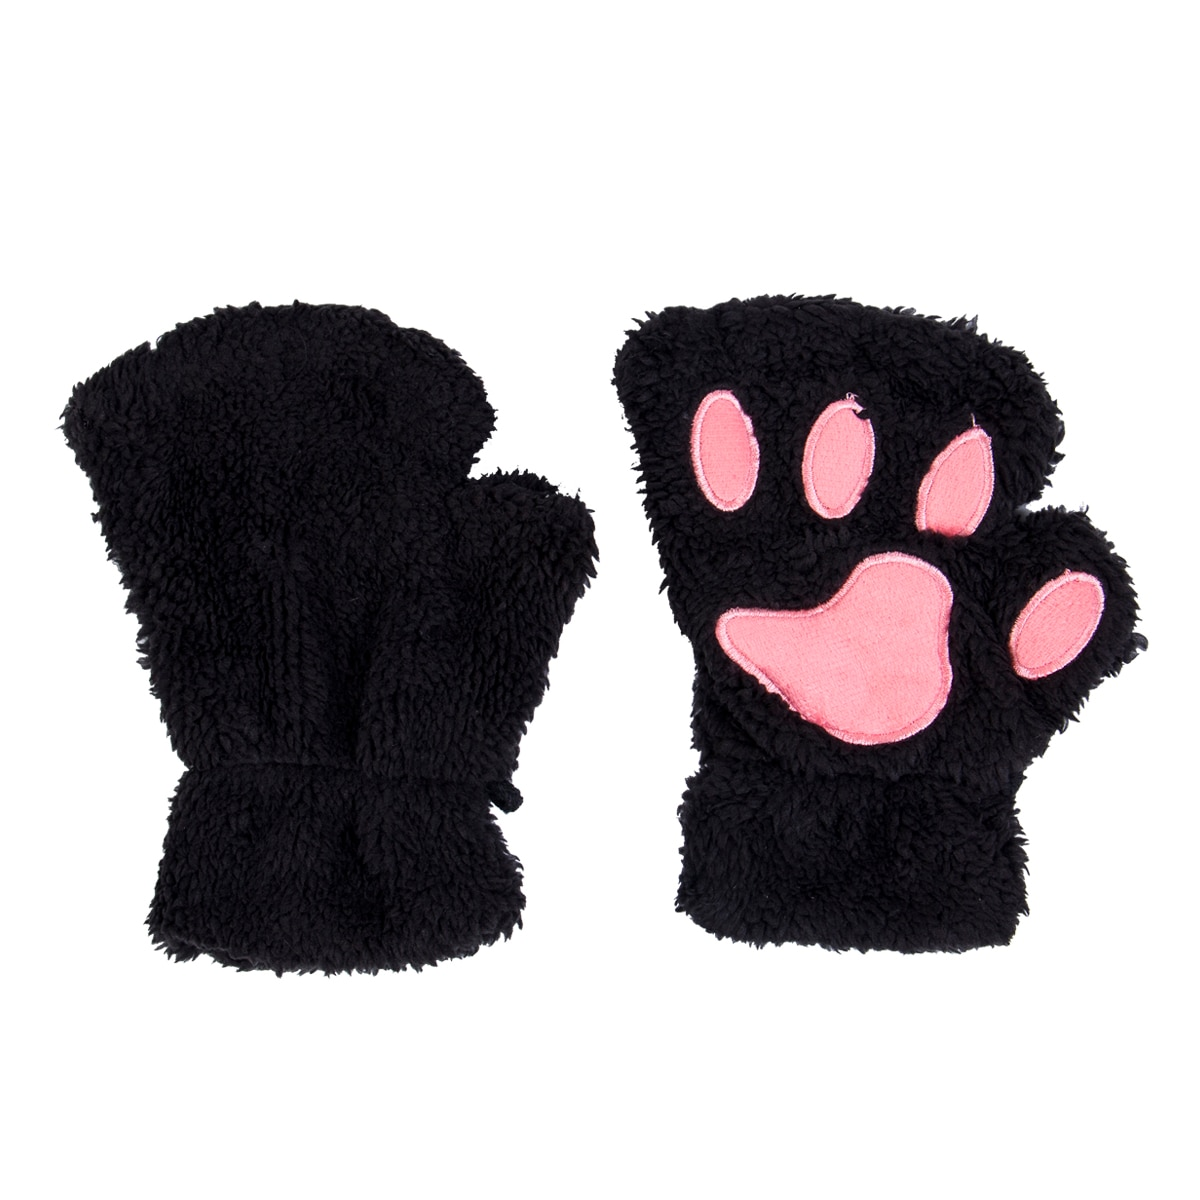 Cat Claw Paw Gloves Lovely Women Warm Winter Mitten Plush Glove Costume Half Finger Soft Gloves for